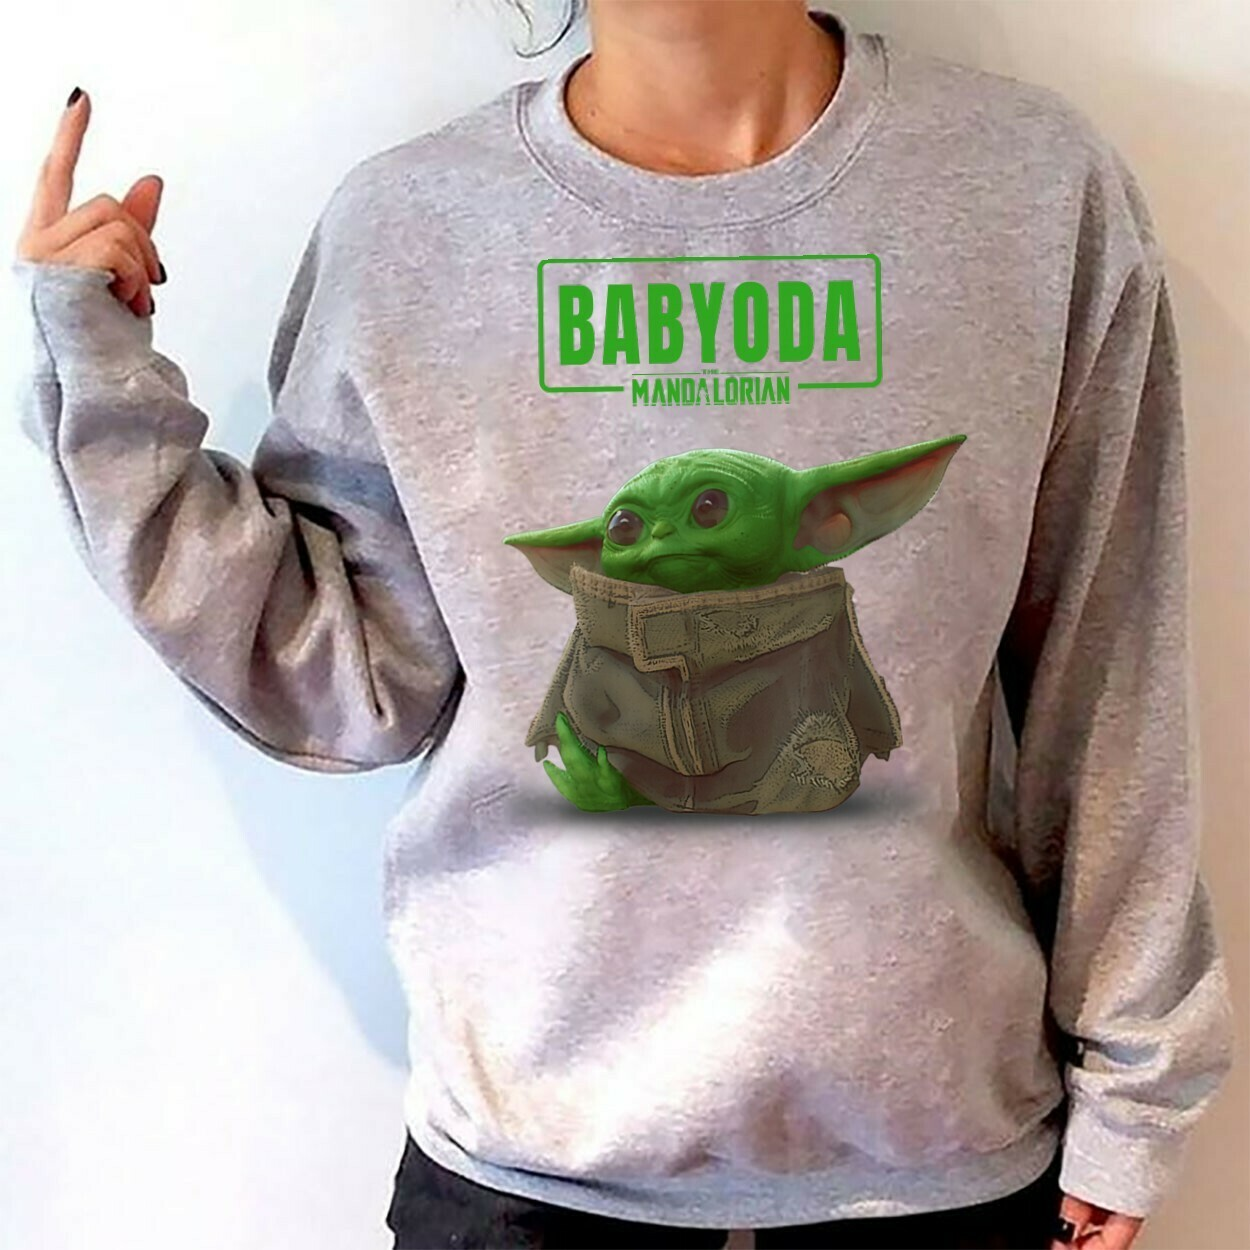 Baby Yoda The Mandalorian The Child Cute Scene,Funny Movie Memes Star Wars,The Rise of Skywalker funny gift T shirt Long Sleeve Sweatshirt Hoodie Jolly Family Gifts